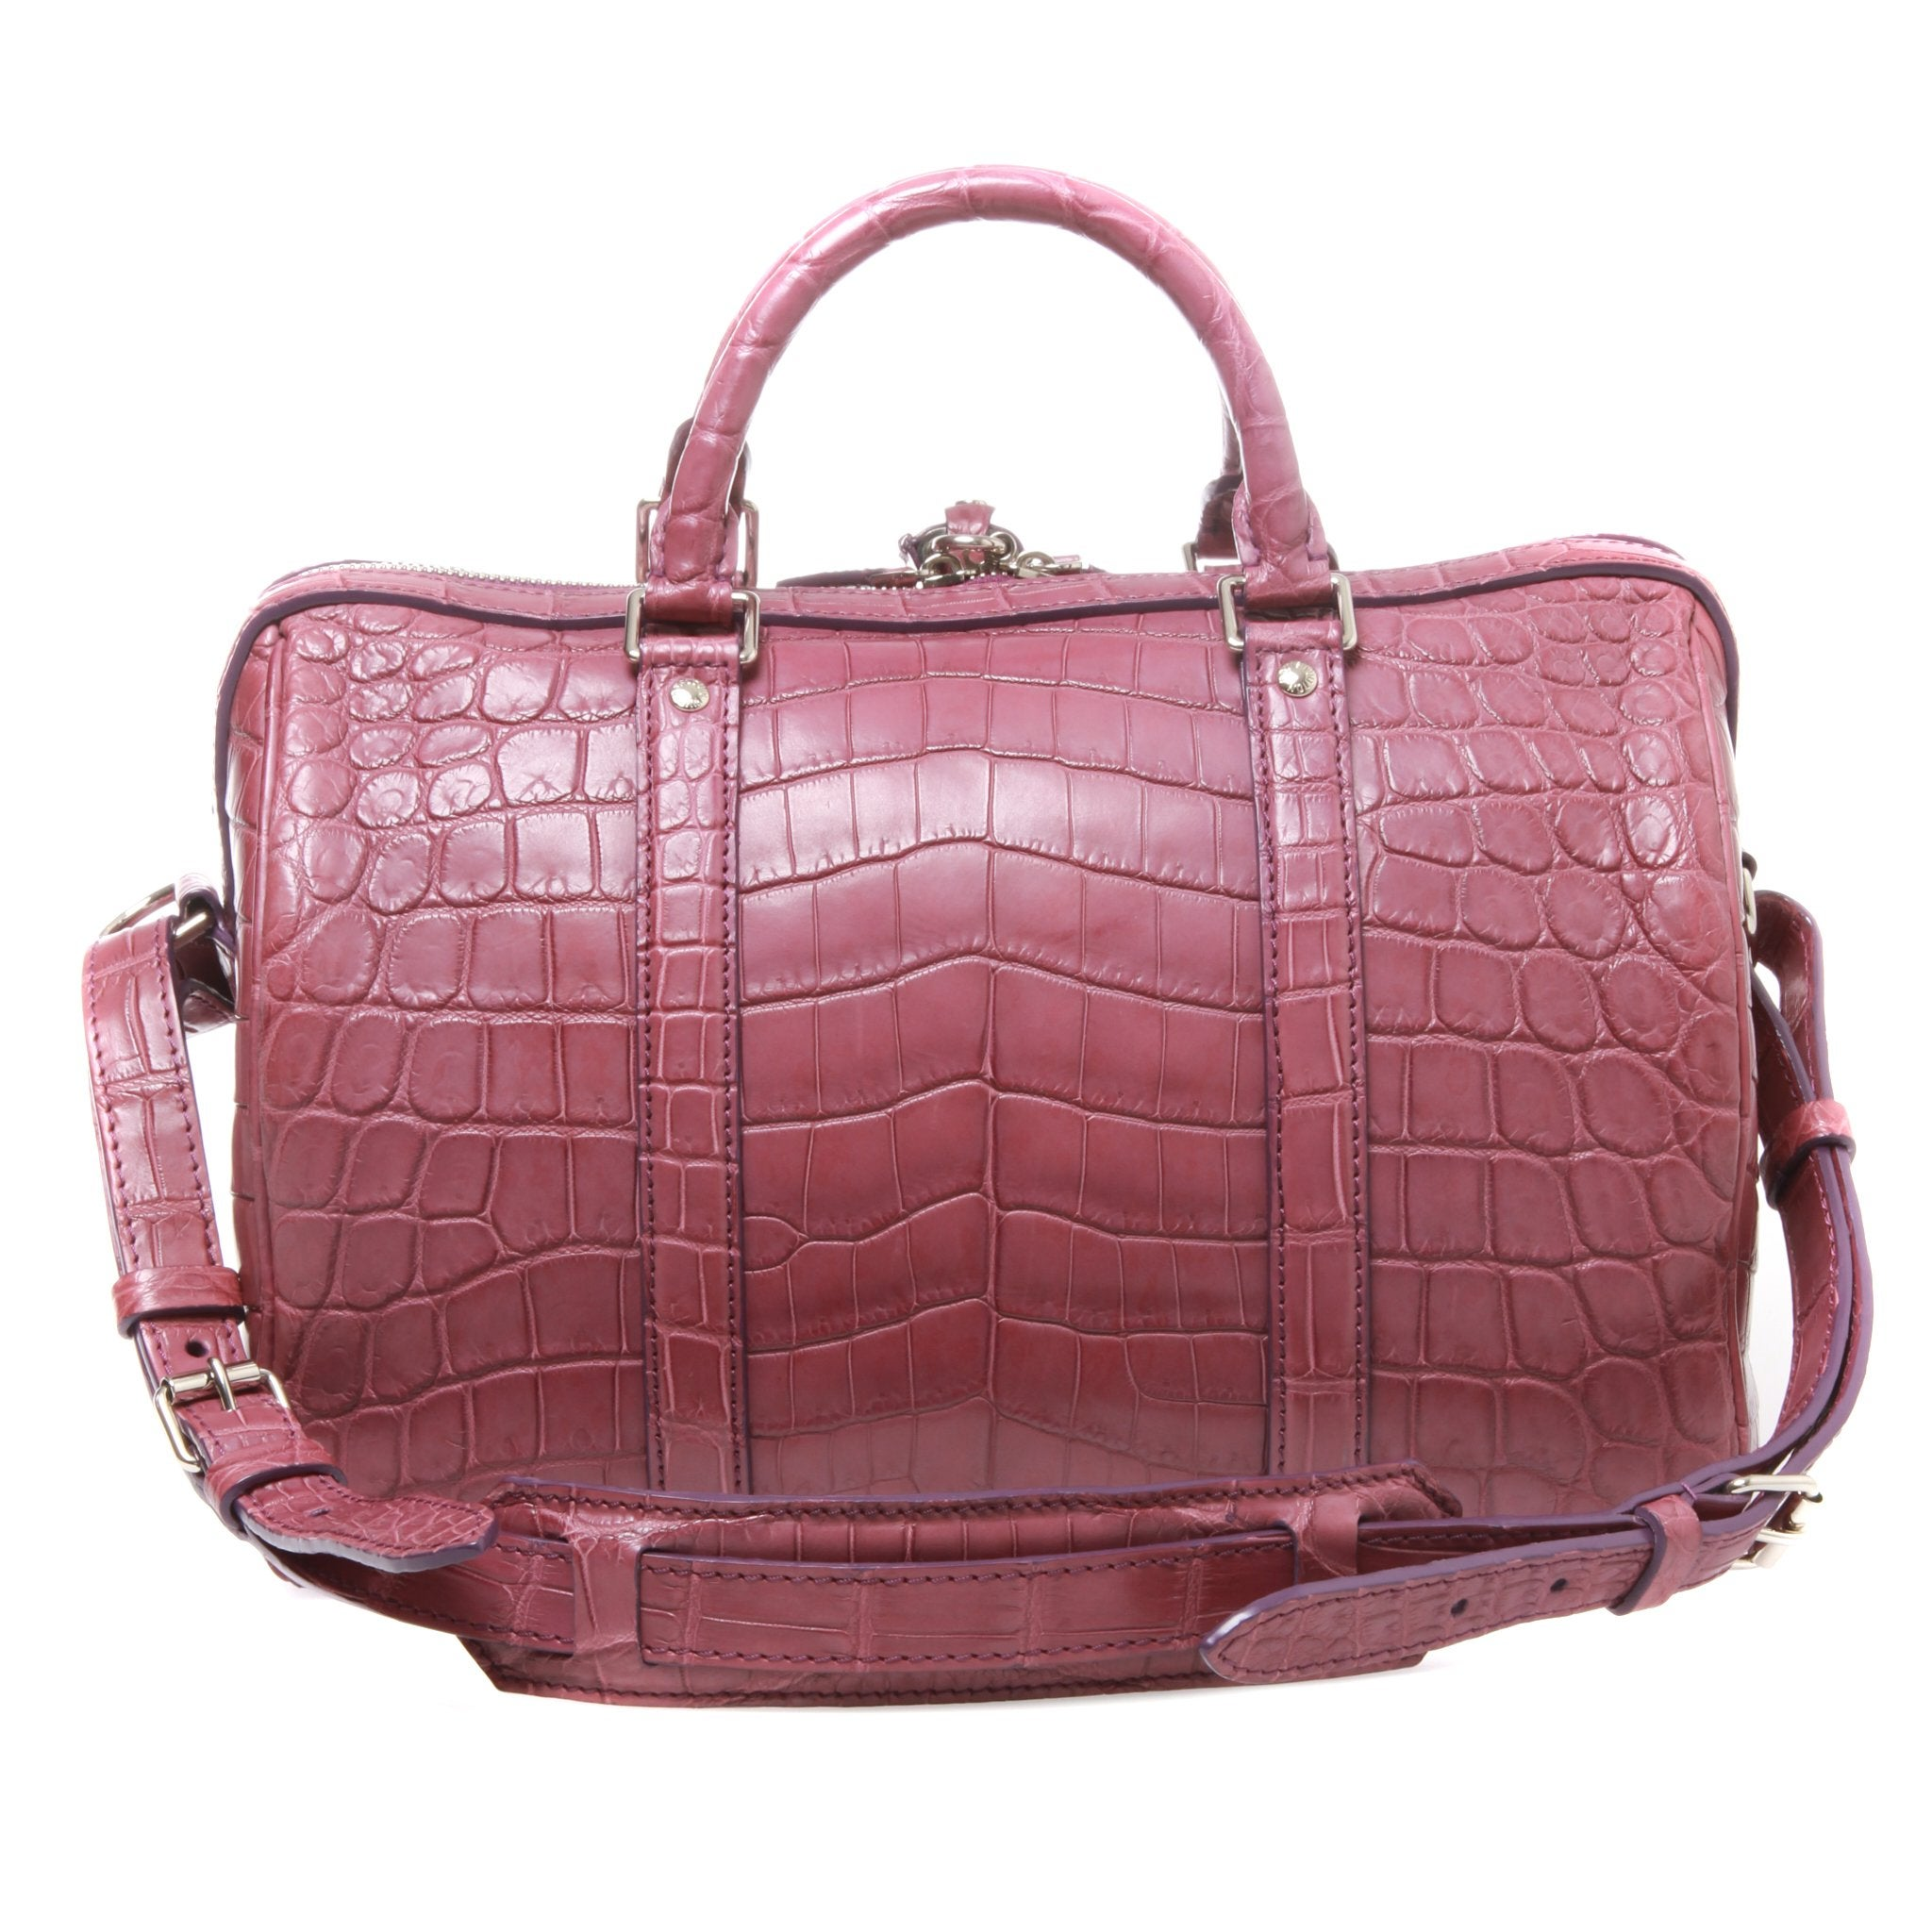 cc704bc2b25 Louis Vuitton 2014 Violet Sofia Coppola BB Bag For Sale at 1stdibs